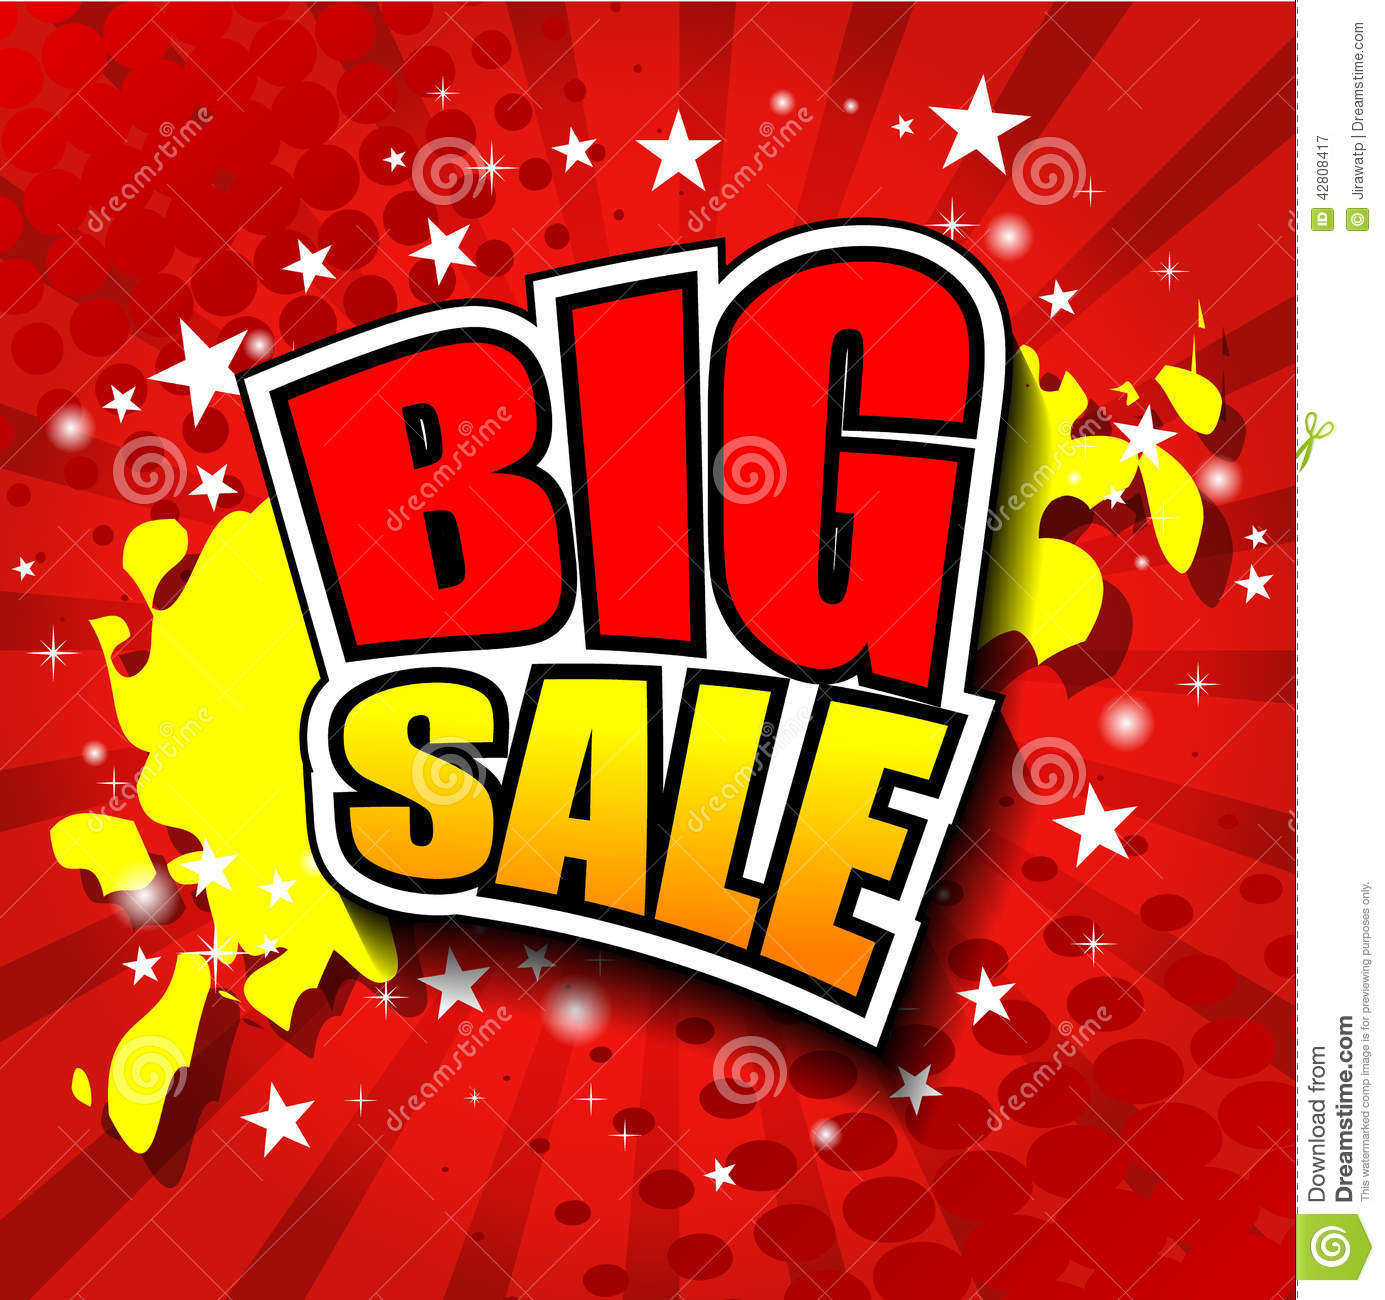 Big sale vector illustrator eps 10 stock vector image for Large prints for sale